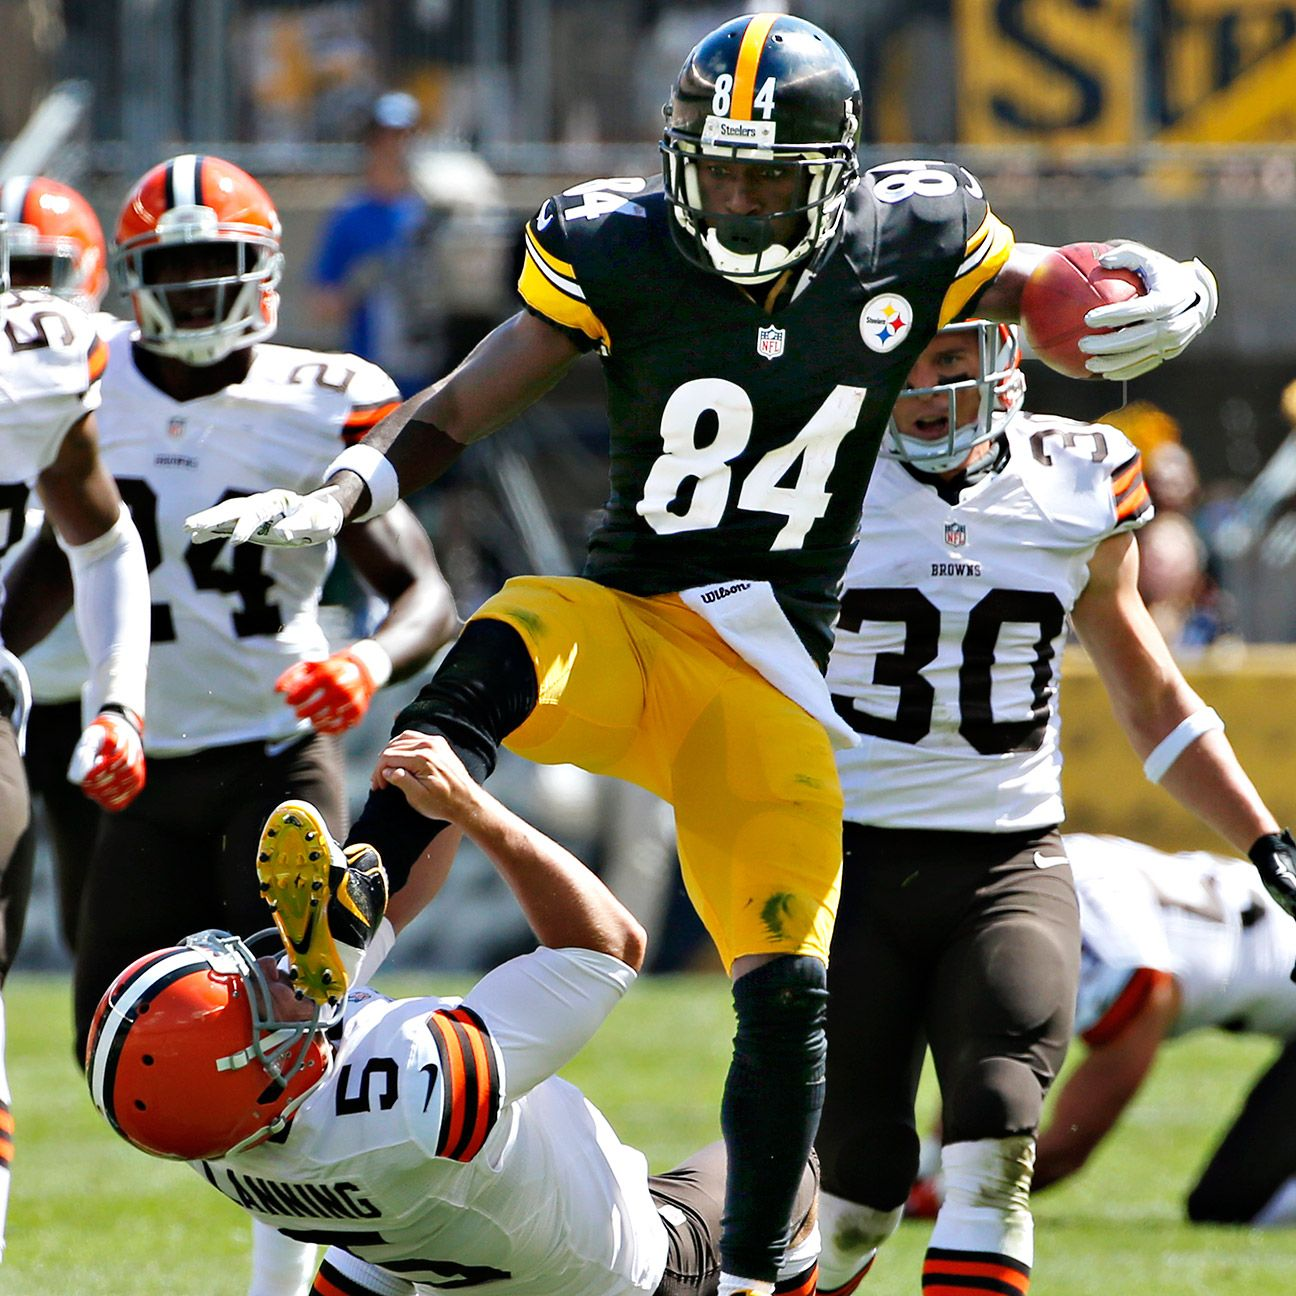 Steelers Brown Jump Kicks Browns Punter Pittsburgh Steelers Steelers Pittsburgh Steelers Football